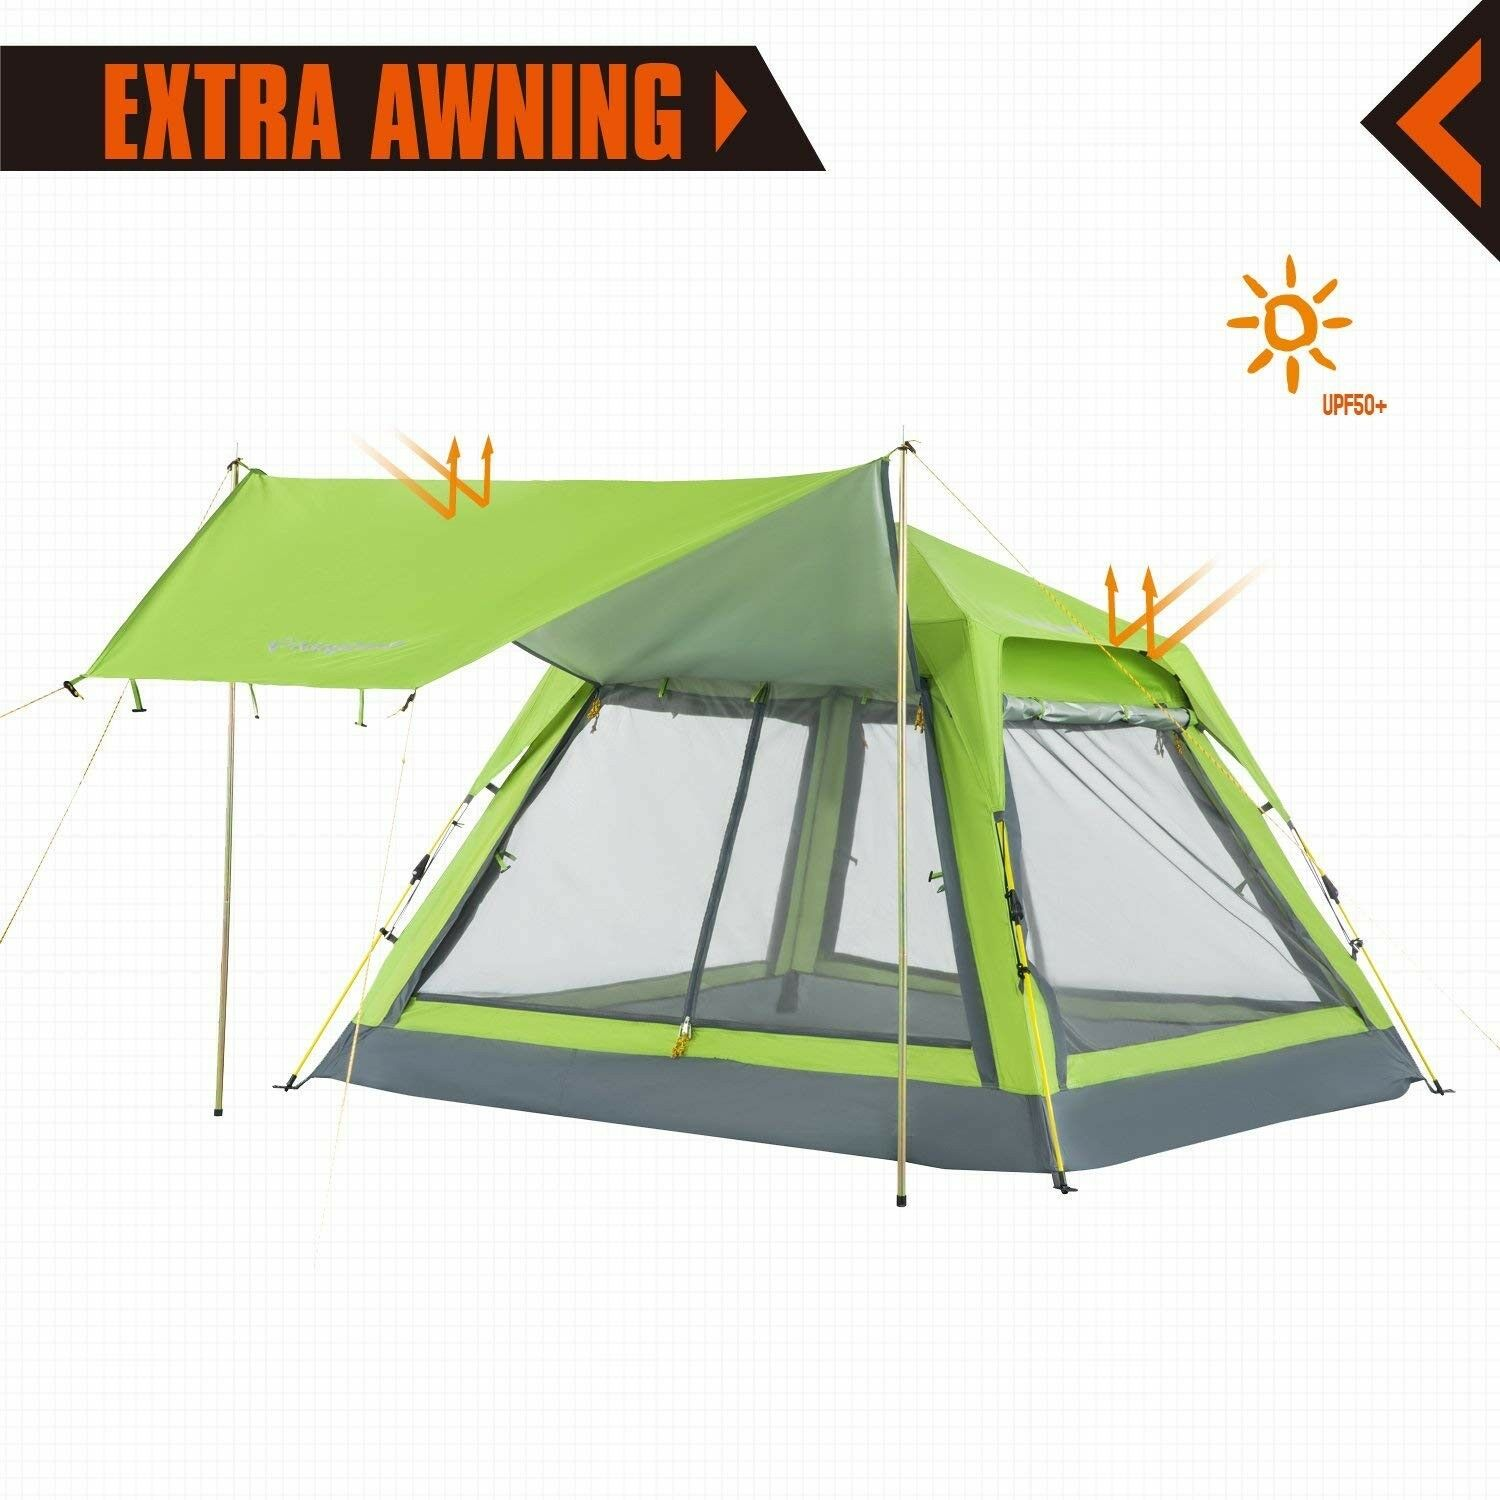 Trail 4 Person Instant Cabin Family Camping Tent For Canopy Mesh Side Wall Green